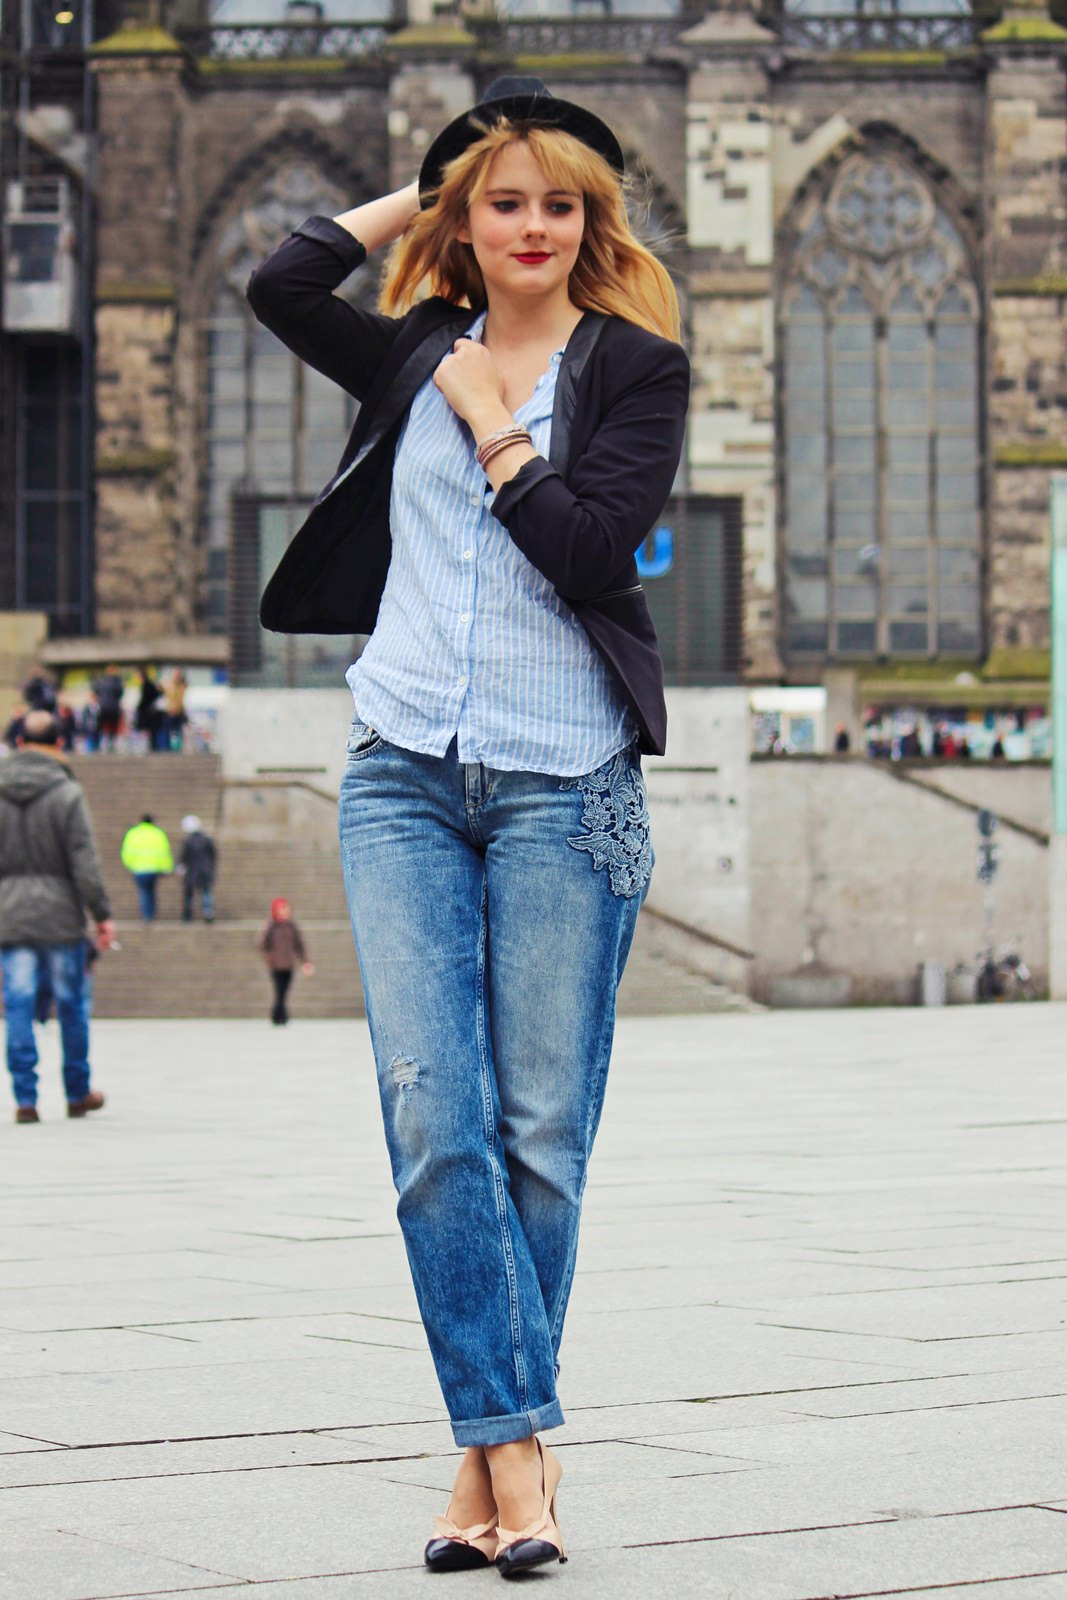 Des Belles Choses Outfit - 10 things why it's great to be a woman Boyfriend Style with pumps 2